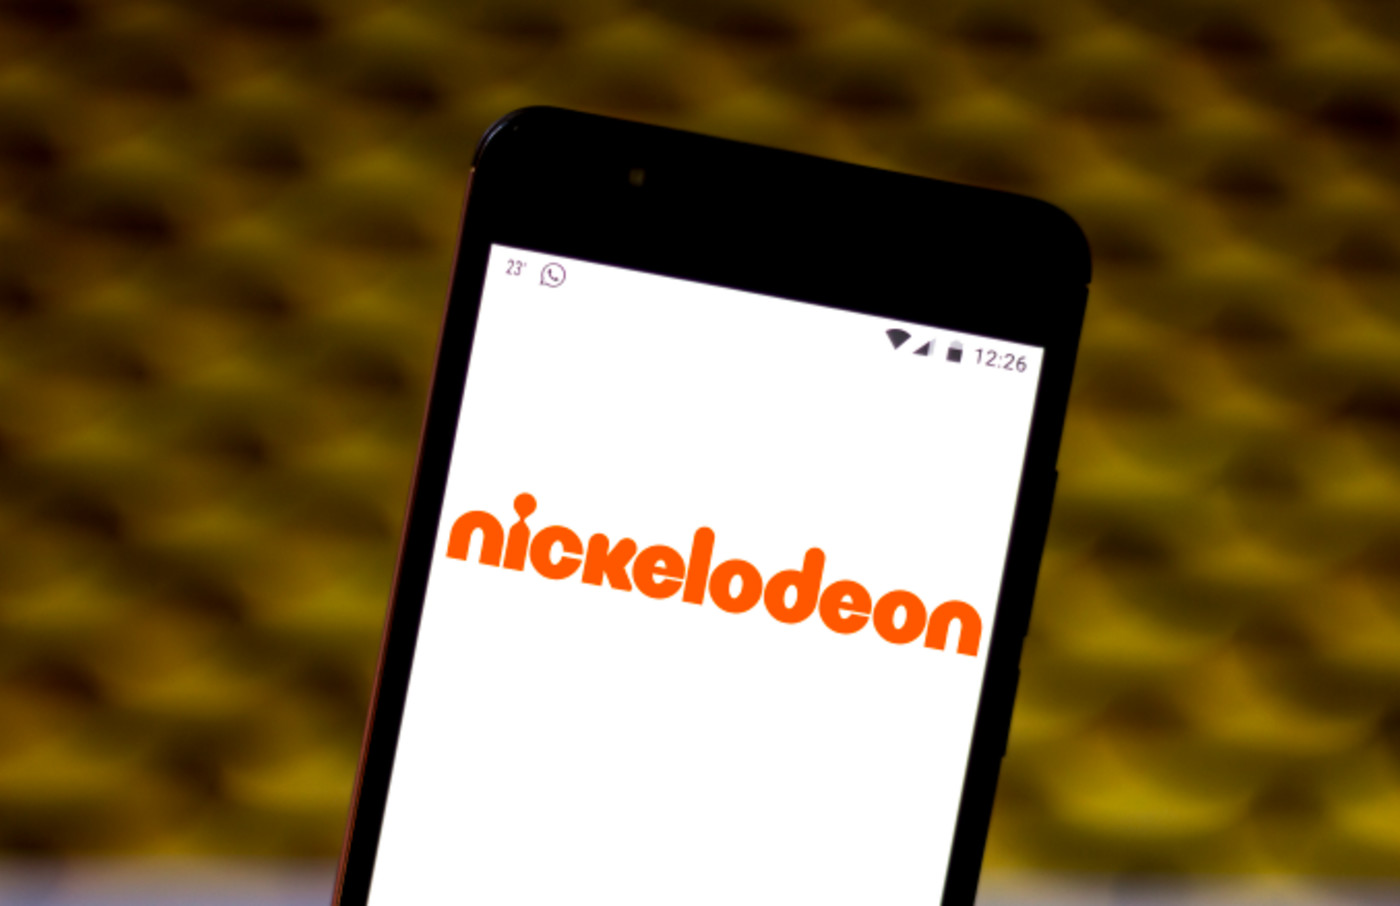 In this photo illustration the Nickelodeon logo